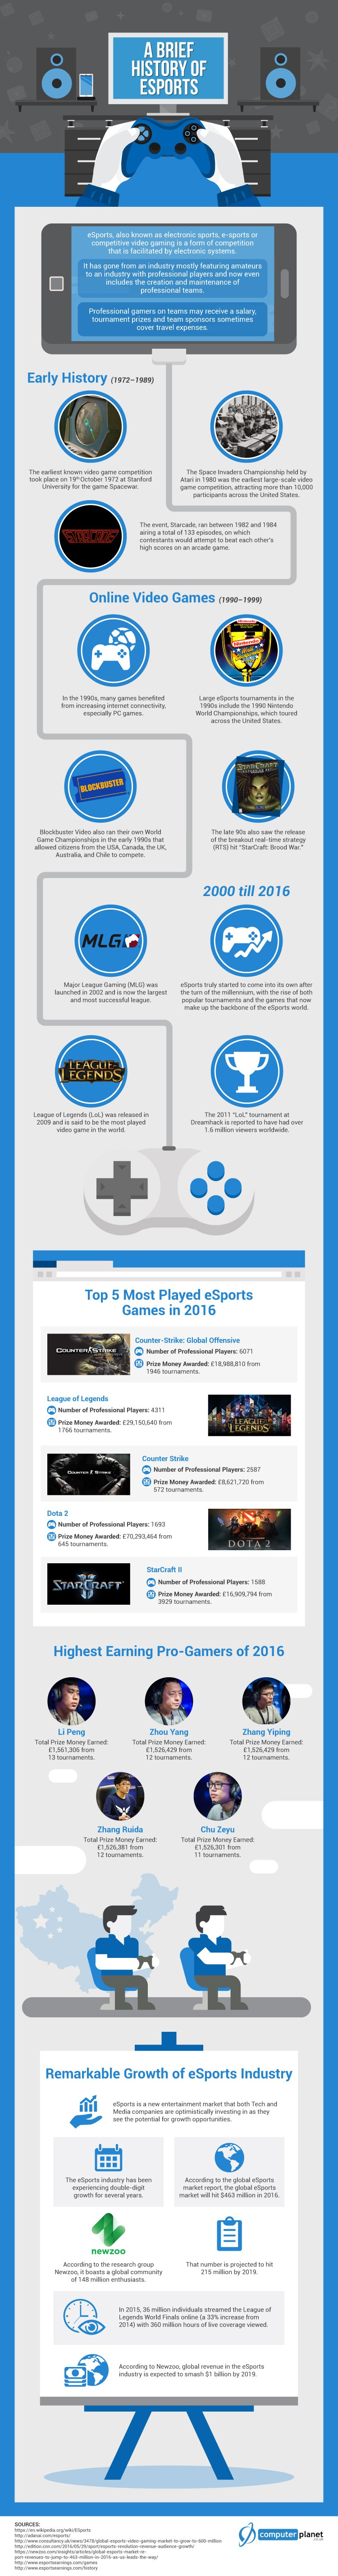 History of eSports Infographic - #GTUSA 1